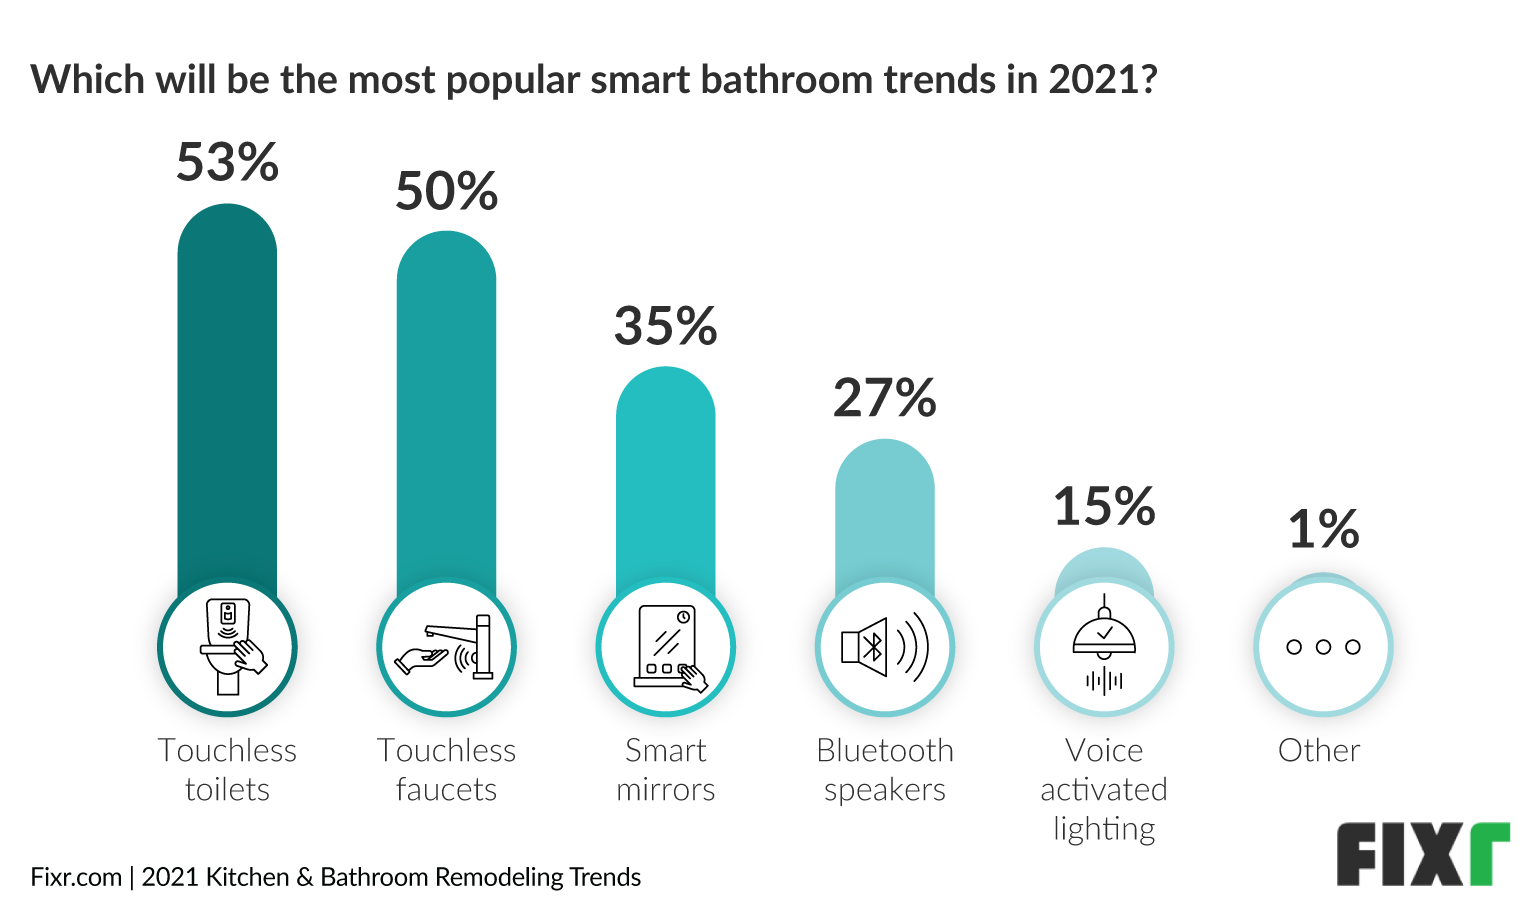 Bathroom Trends 2021 - Touchless Toilets and Faucets as Top Smart Trends